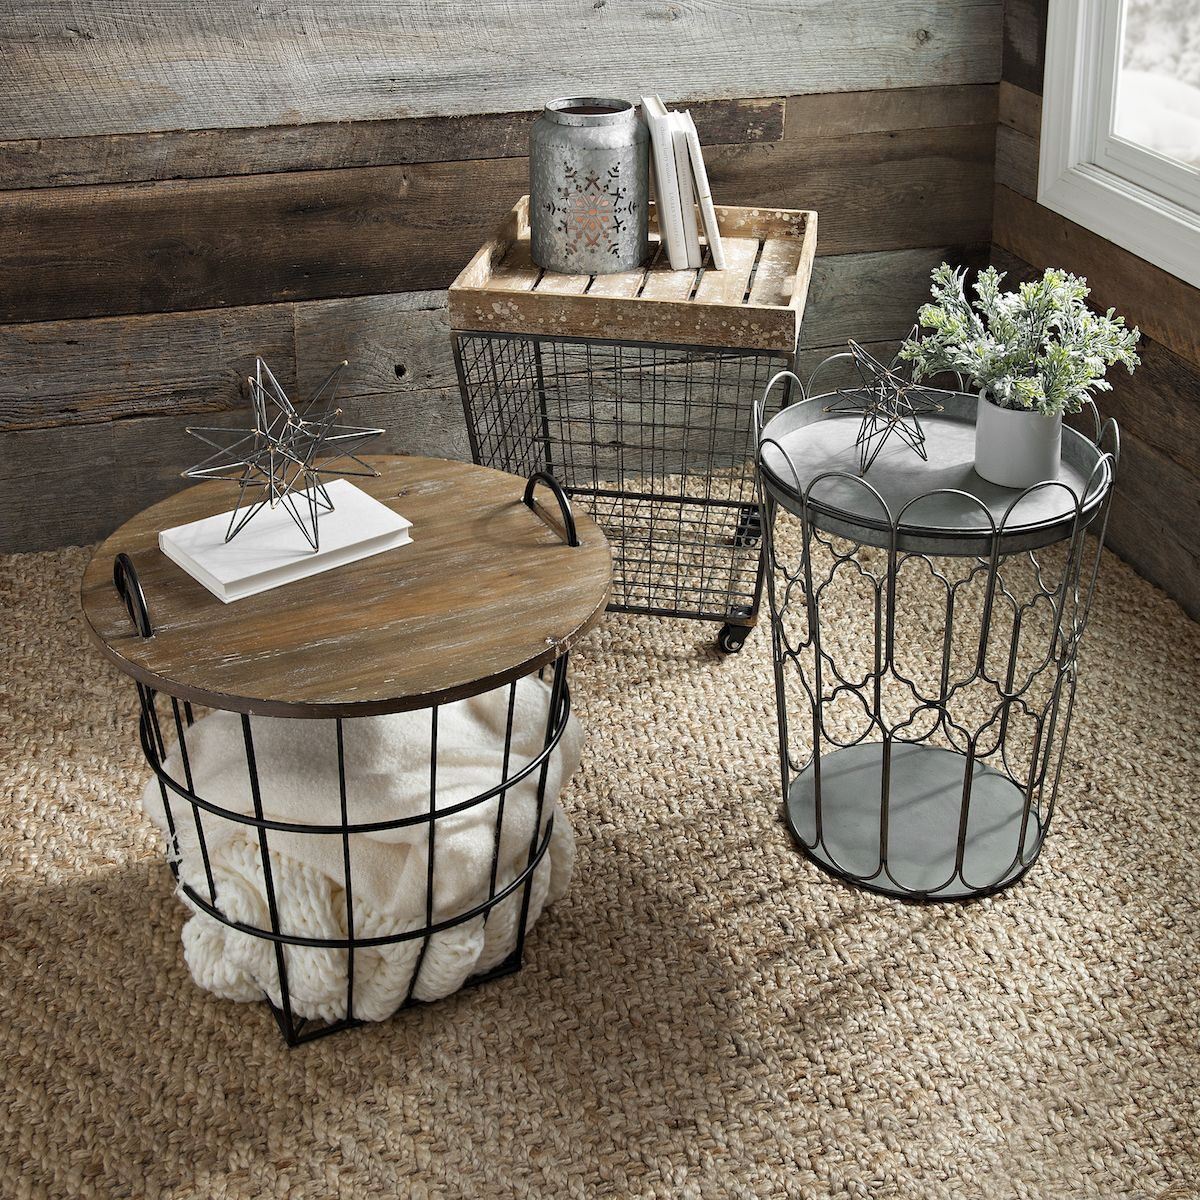 Industrial wire crate accent table clutter crates and blanket